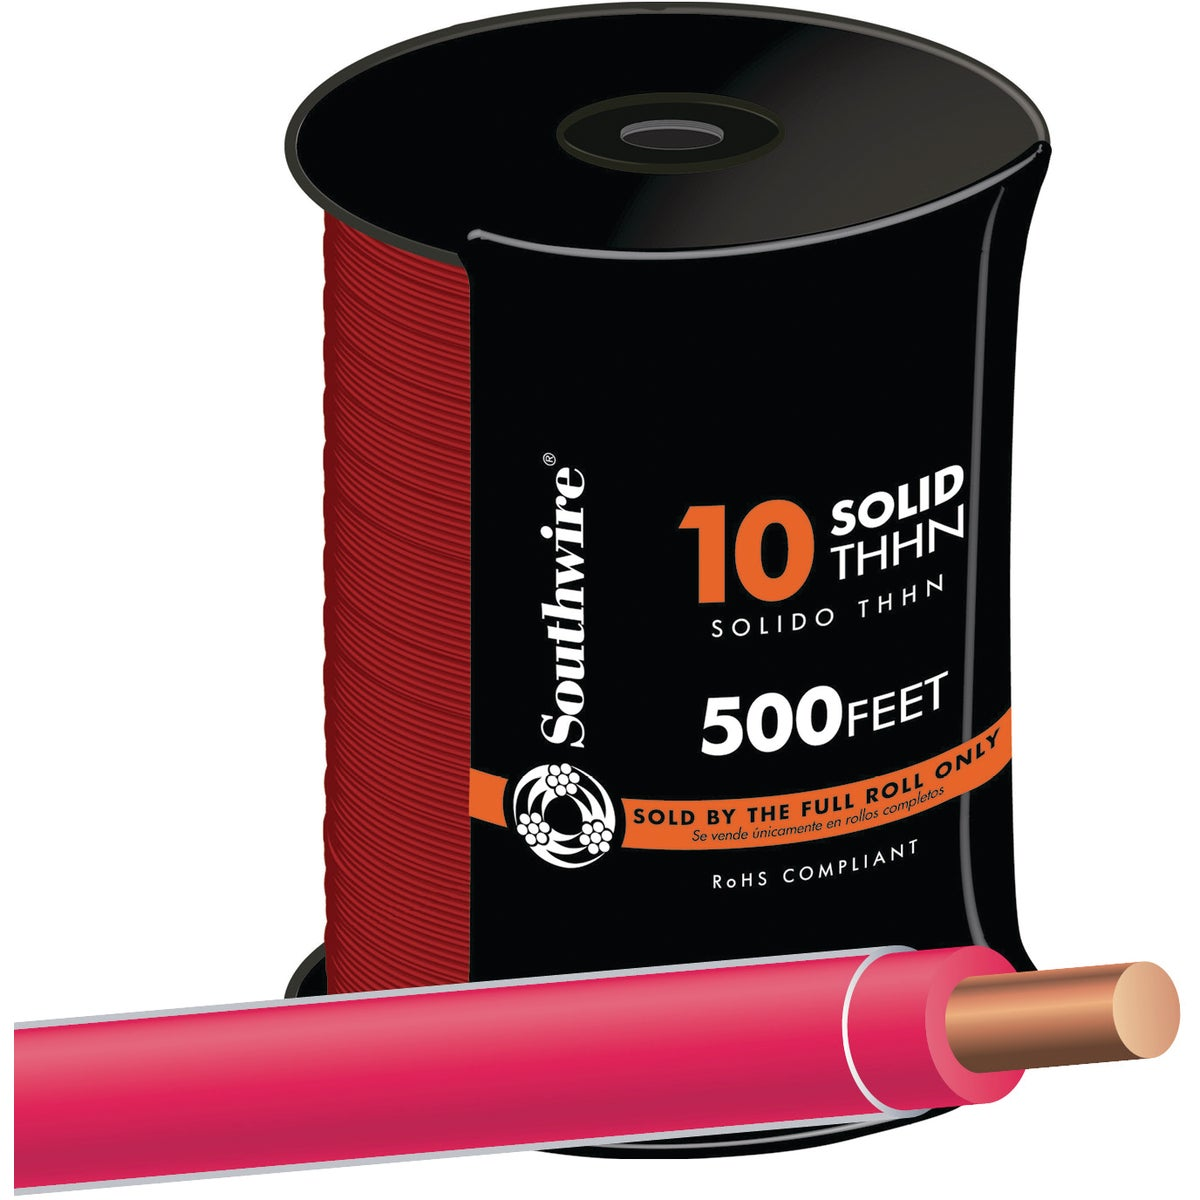 Southwire 500' 10SOL RED THHN WIRE 11597257